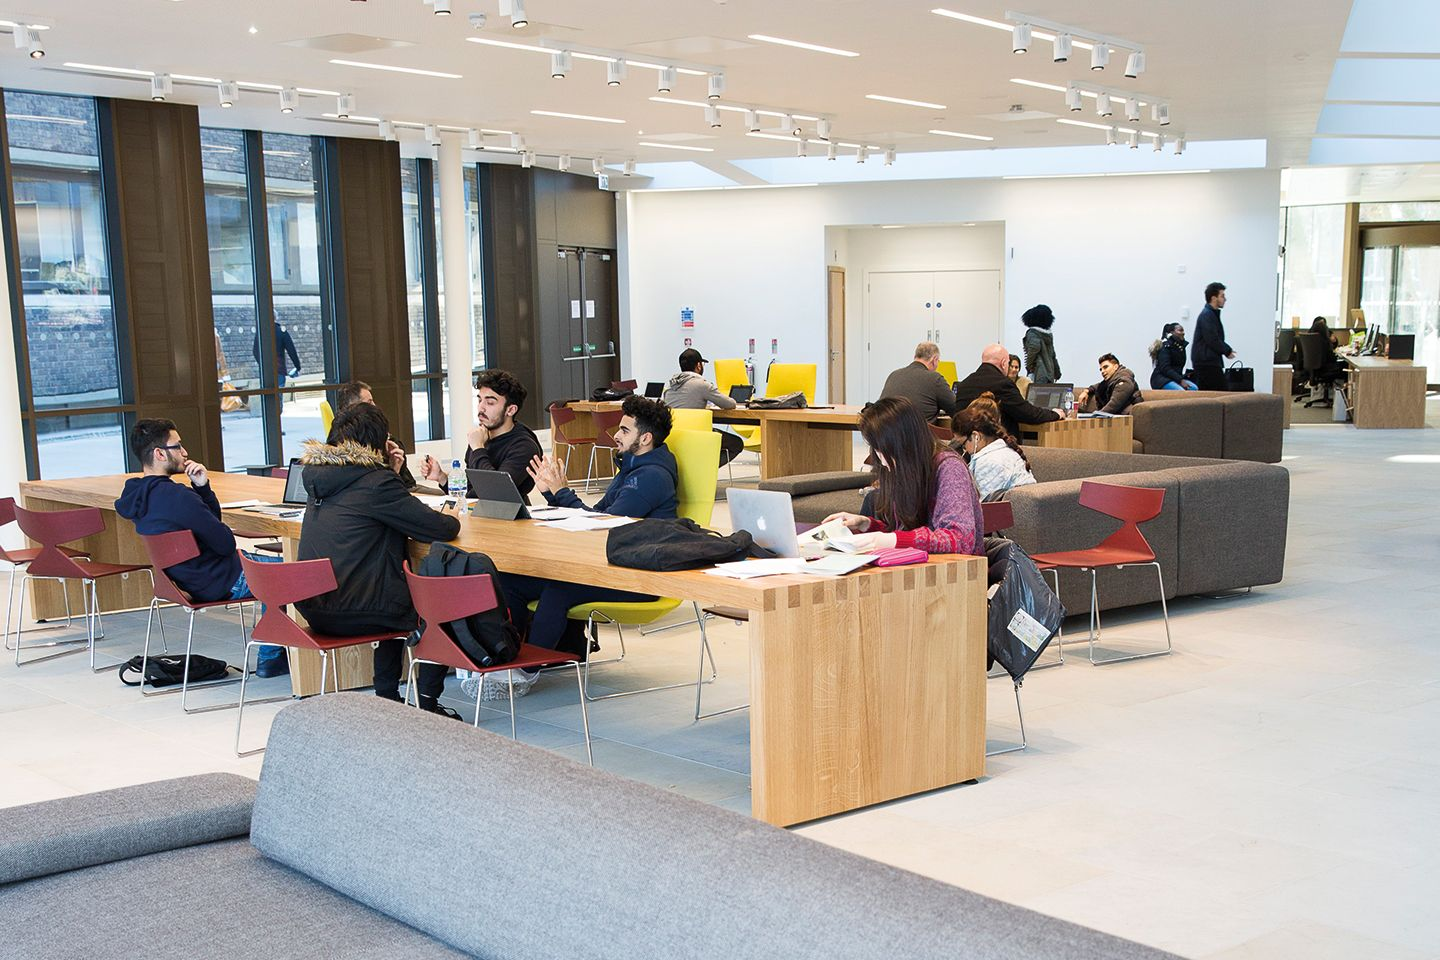 Students in the study lounge area